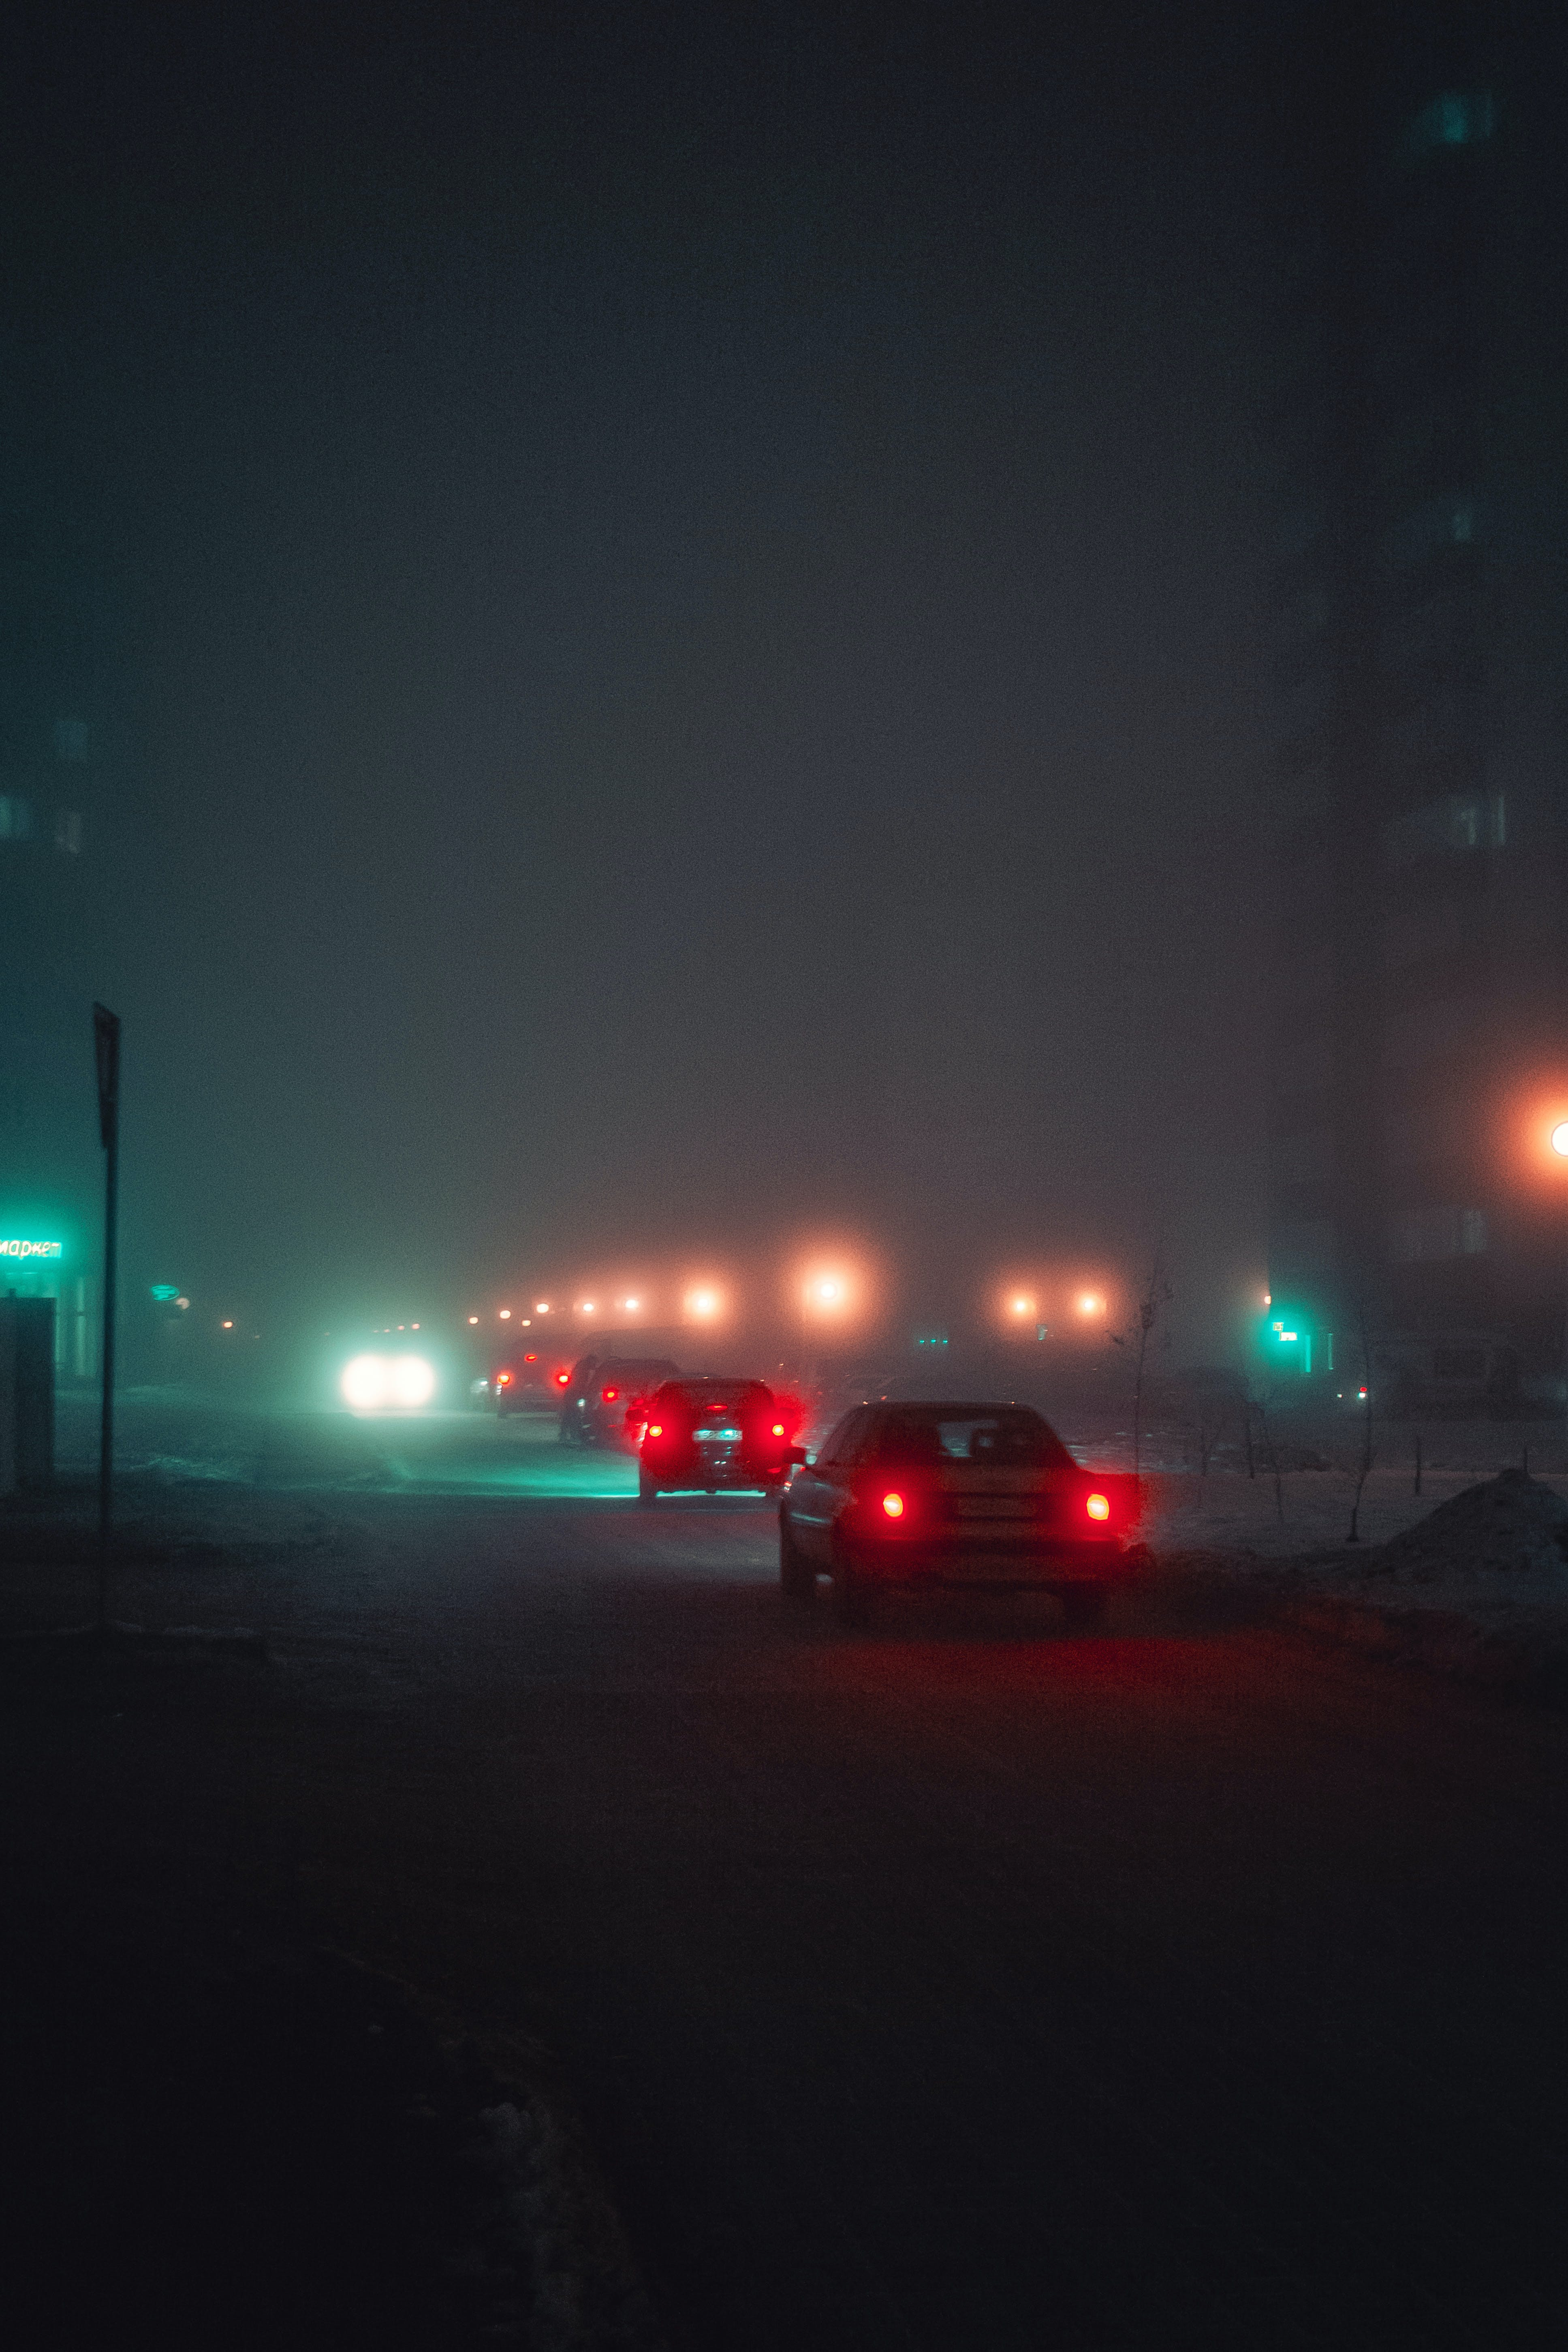 Cars on Roadway during Nighttime